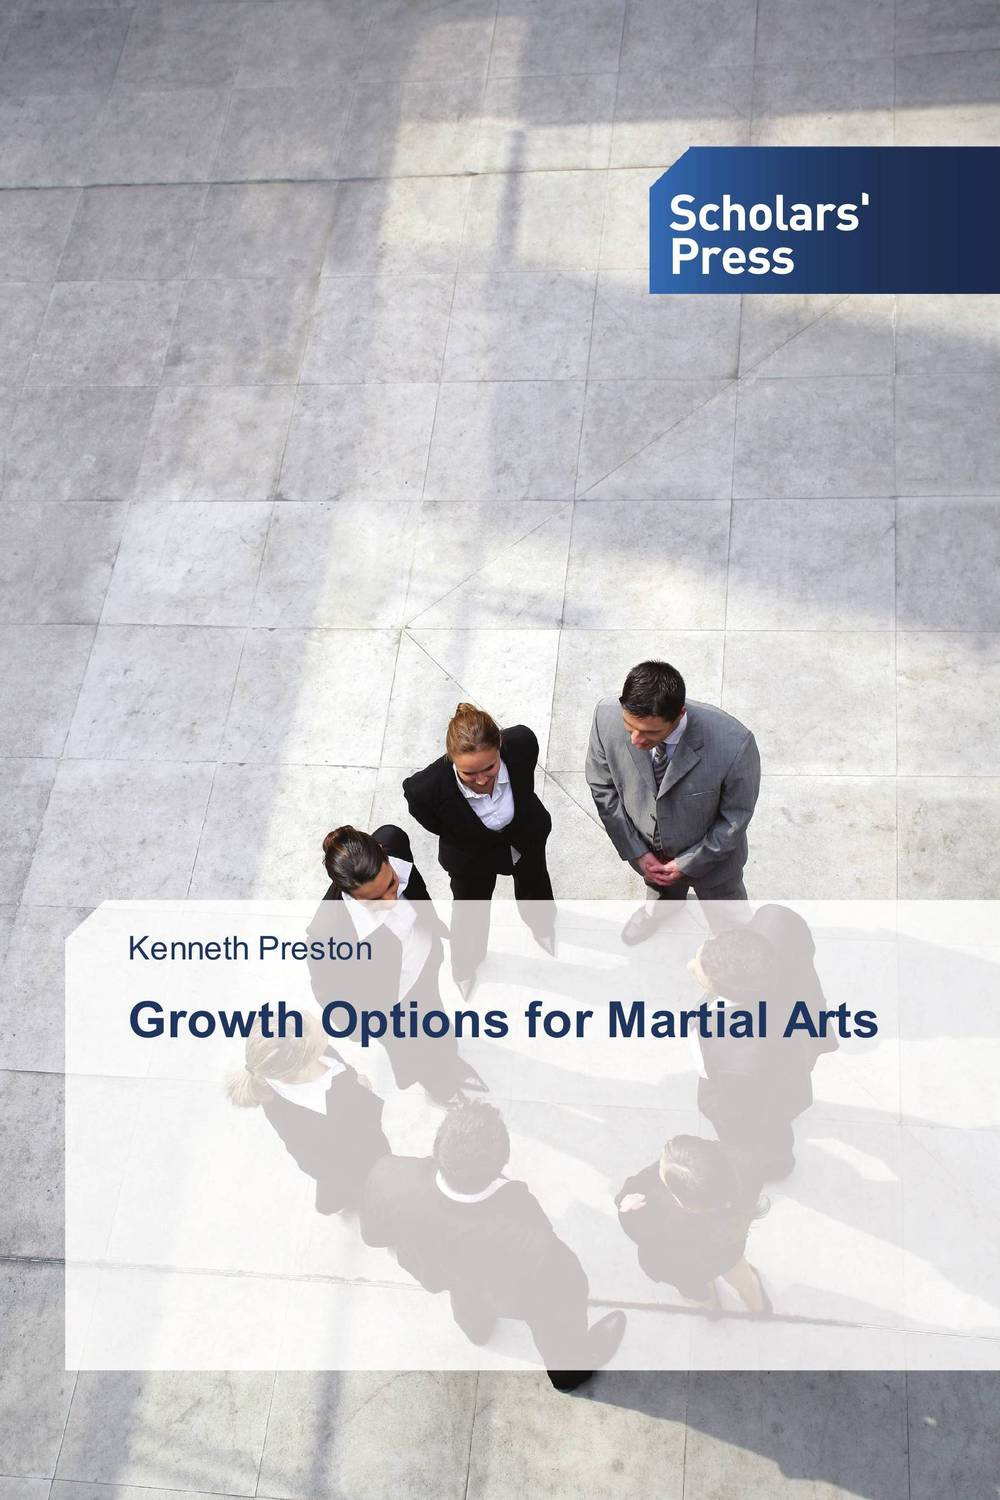 Growth Options for Martial Arts david rose s the startup checklist 25 steps to a scalable high growth business